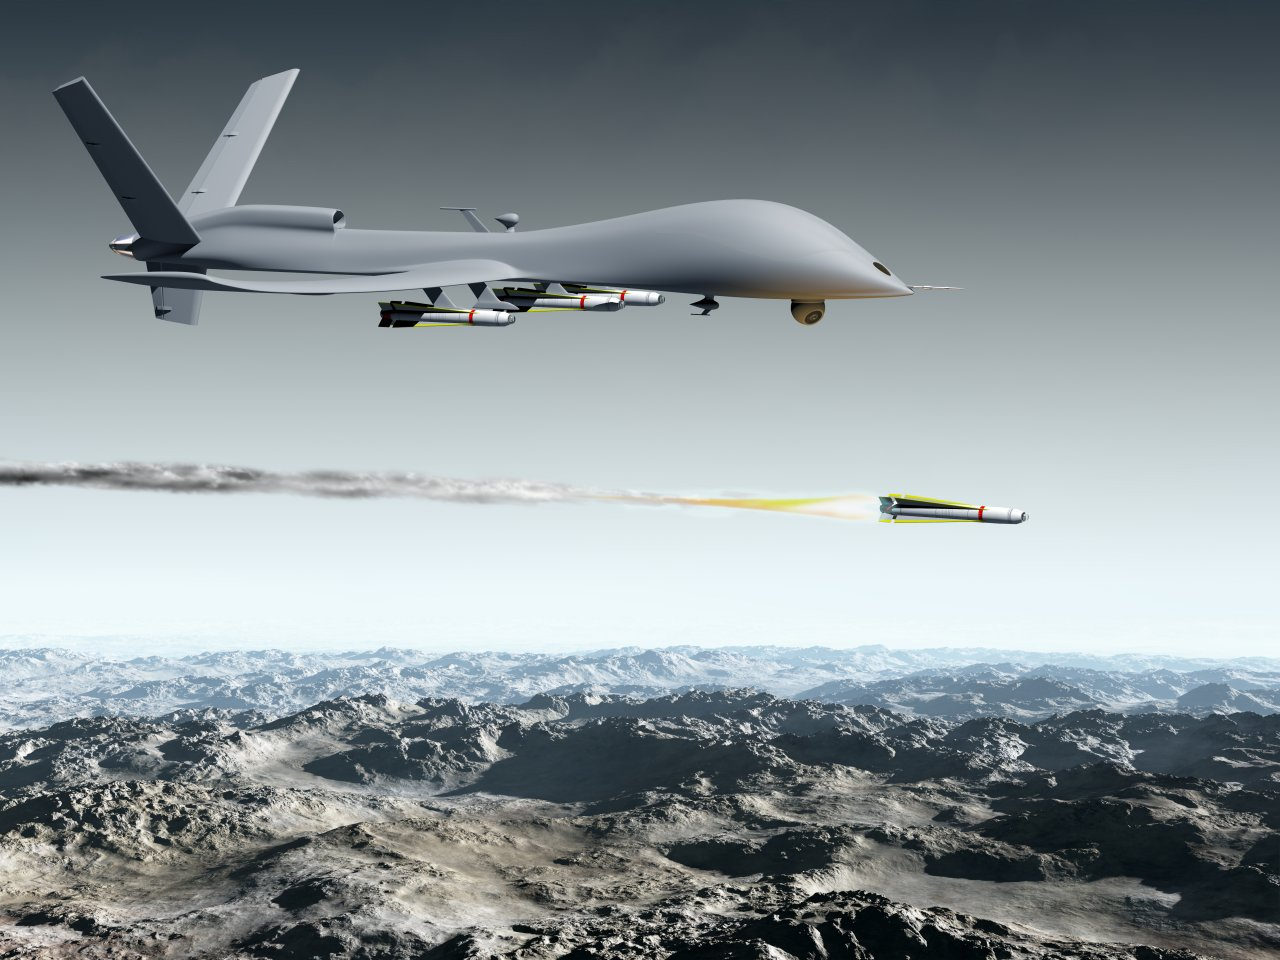 Whistleblower Suit Accuses Northrop Grumman of Faking GPS Drone Systems Testing